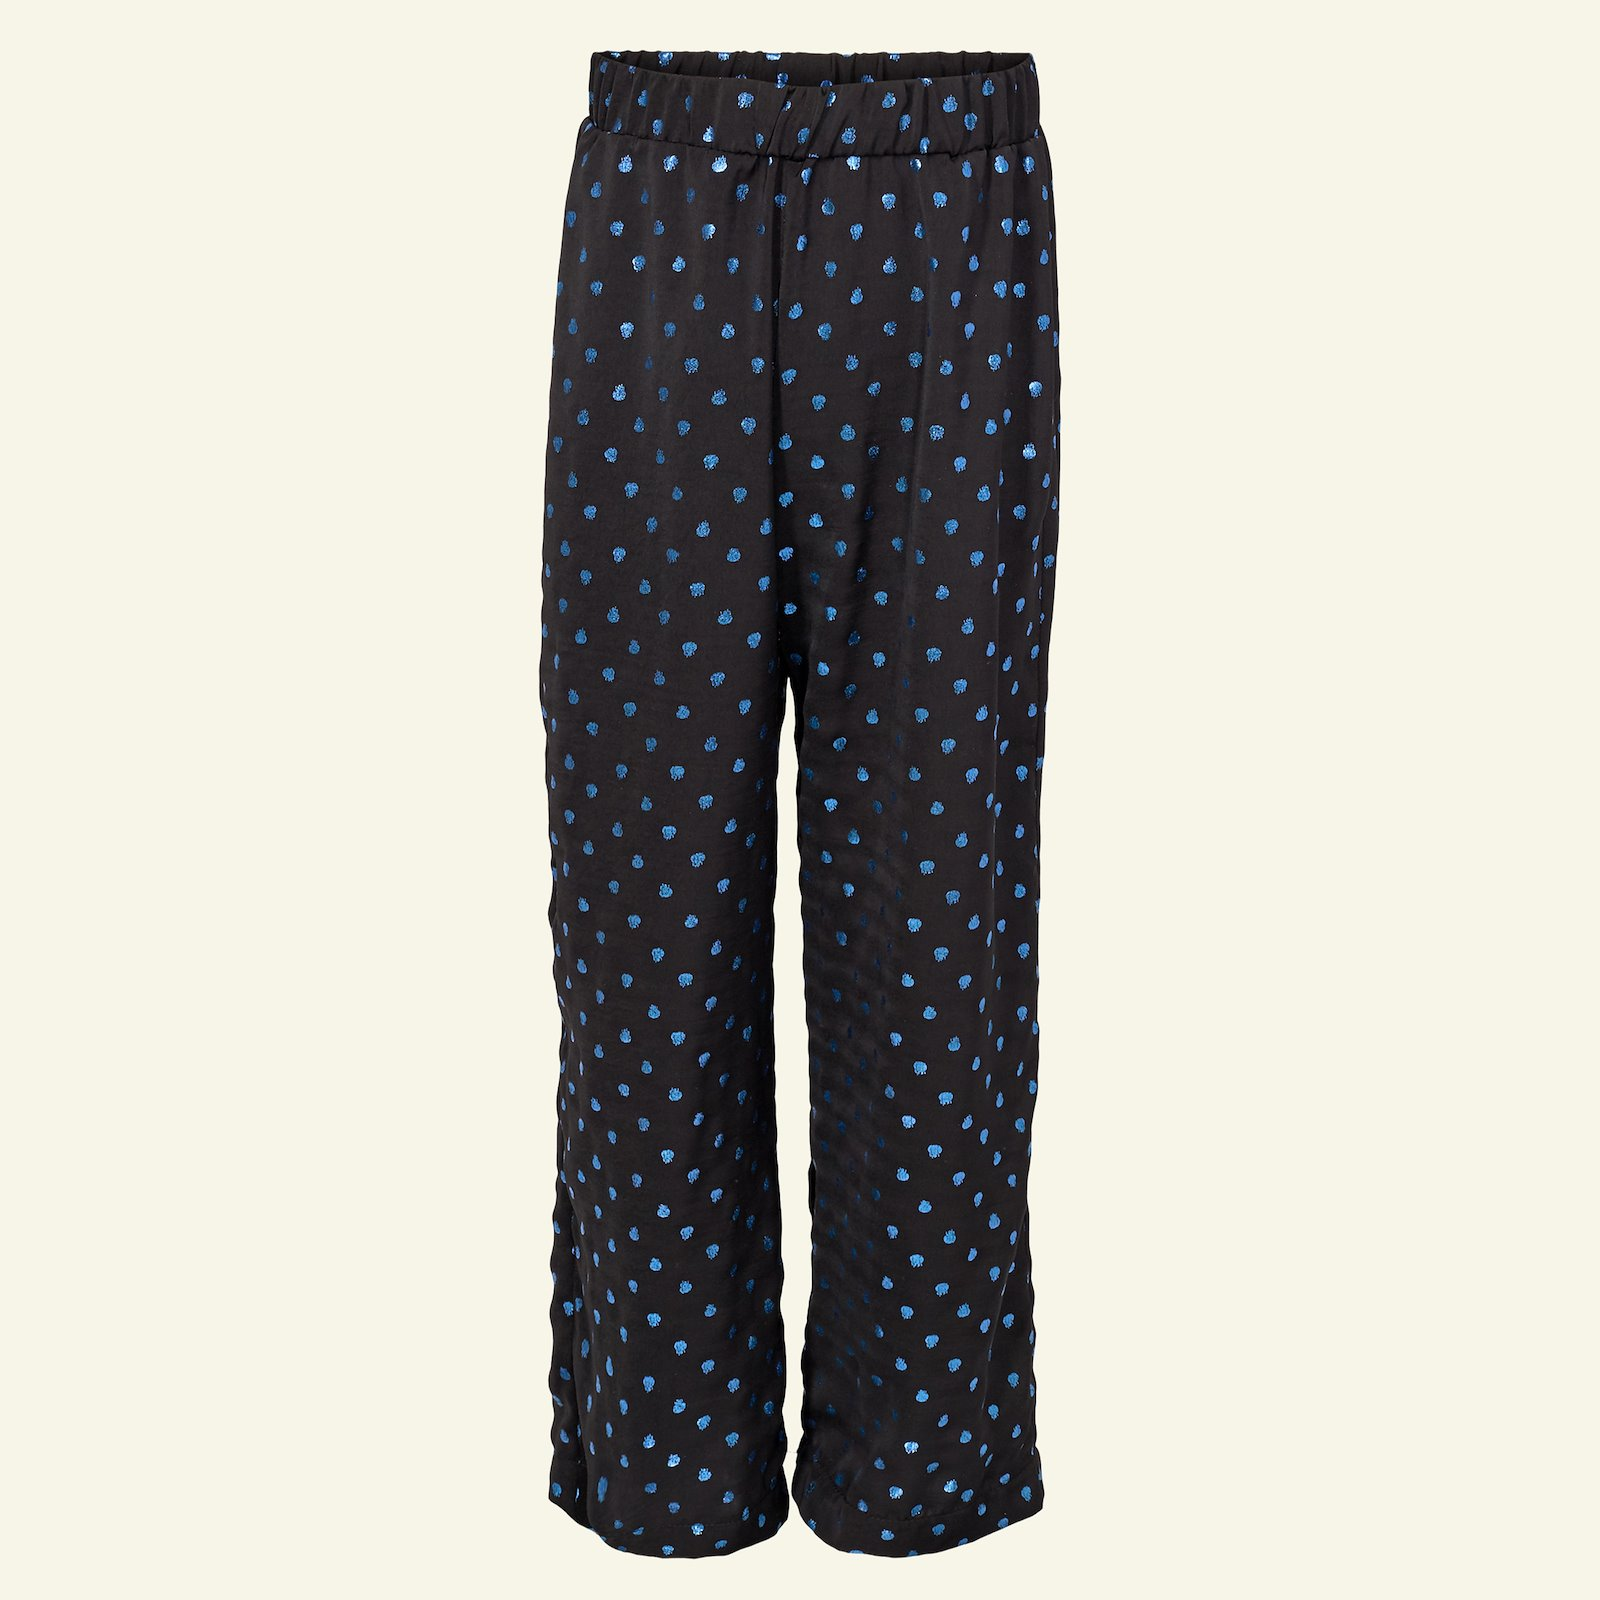 High waist and wide lege trouser, 122/7y p60034_570100_sskit